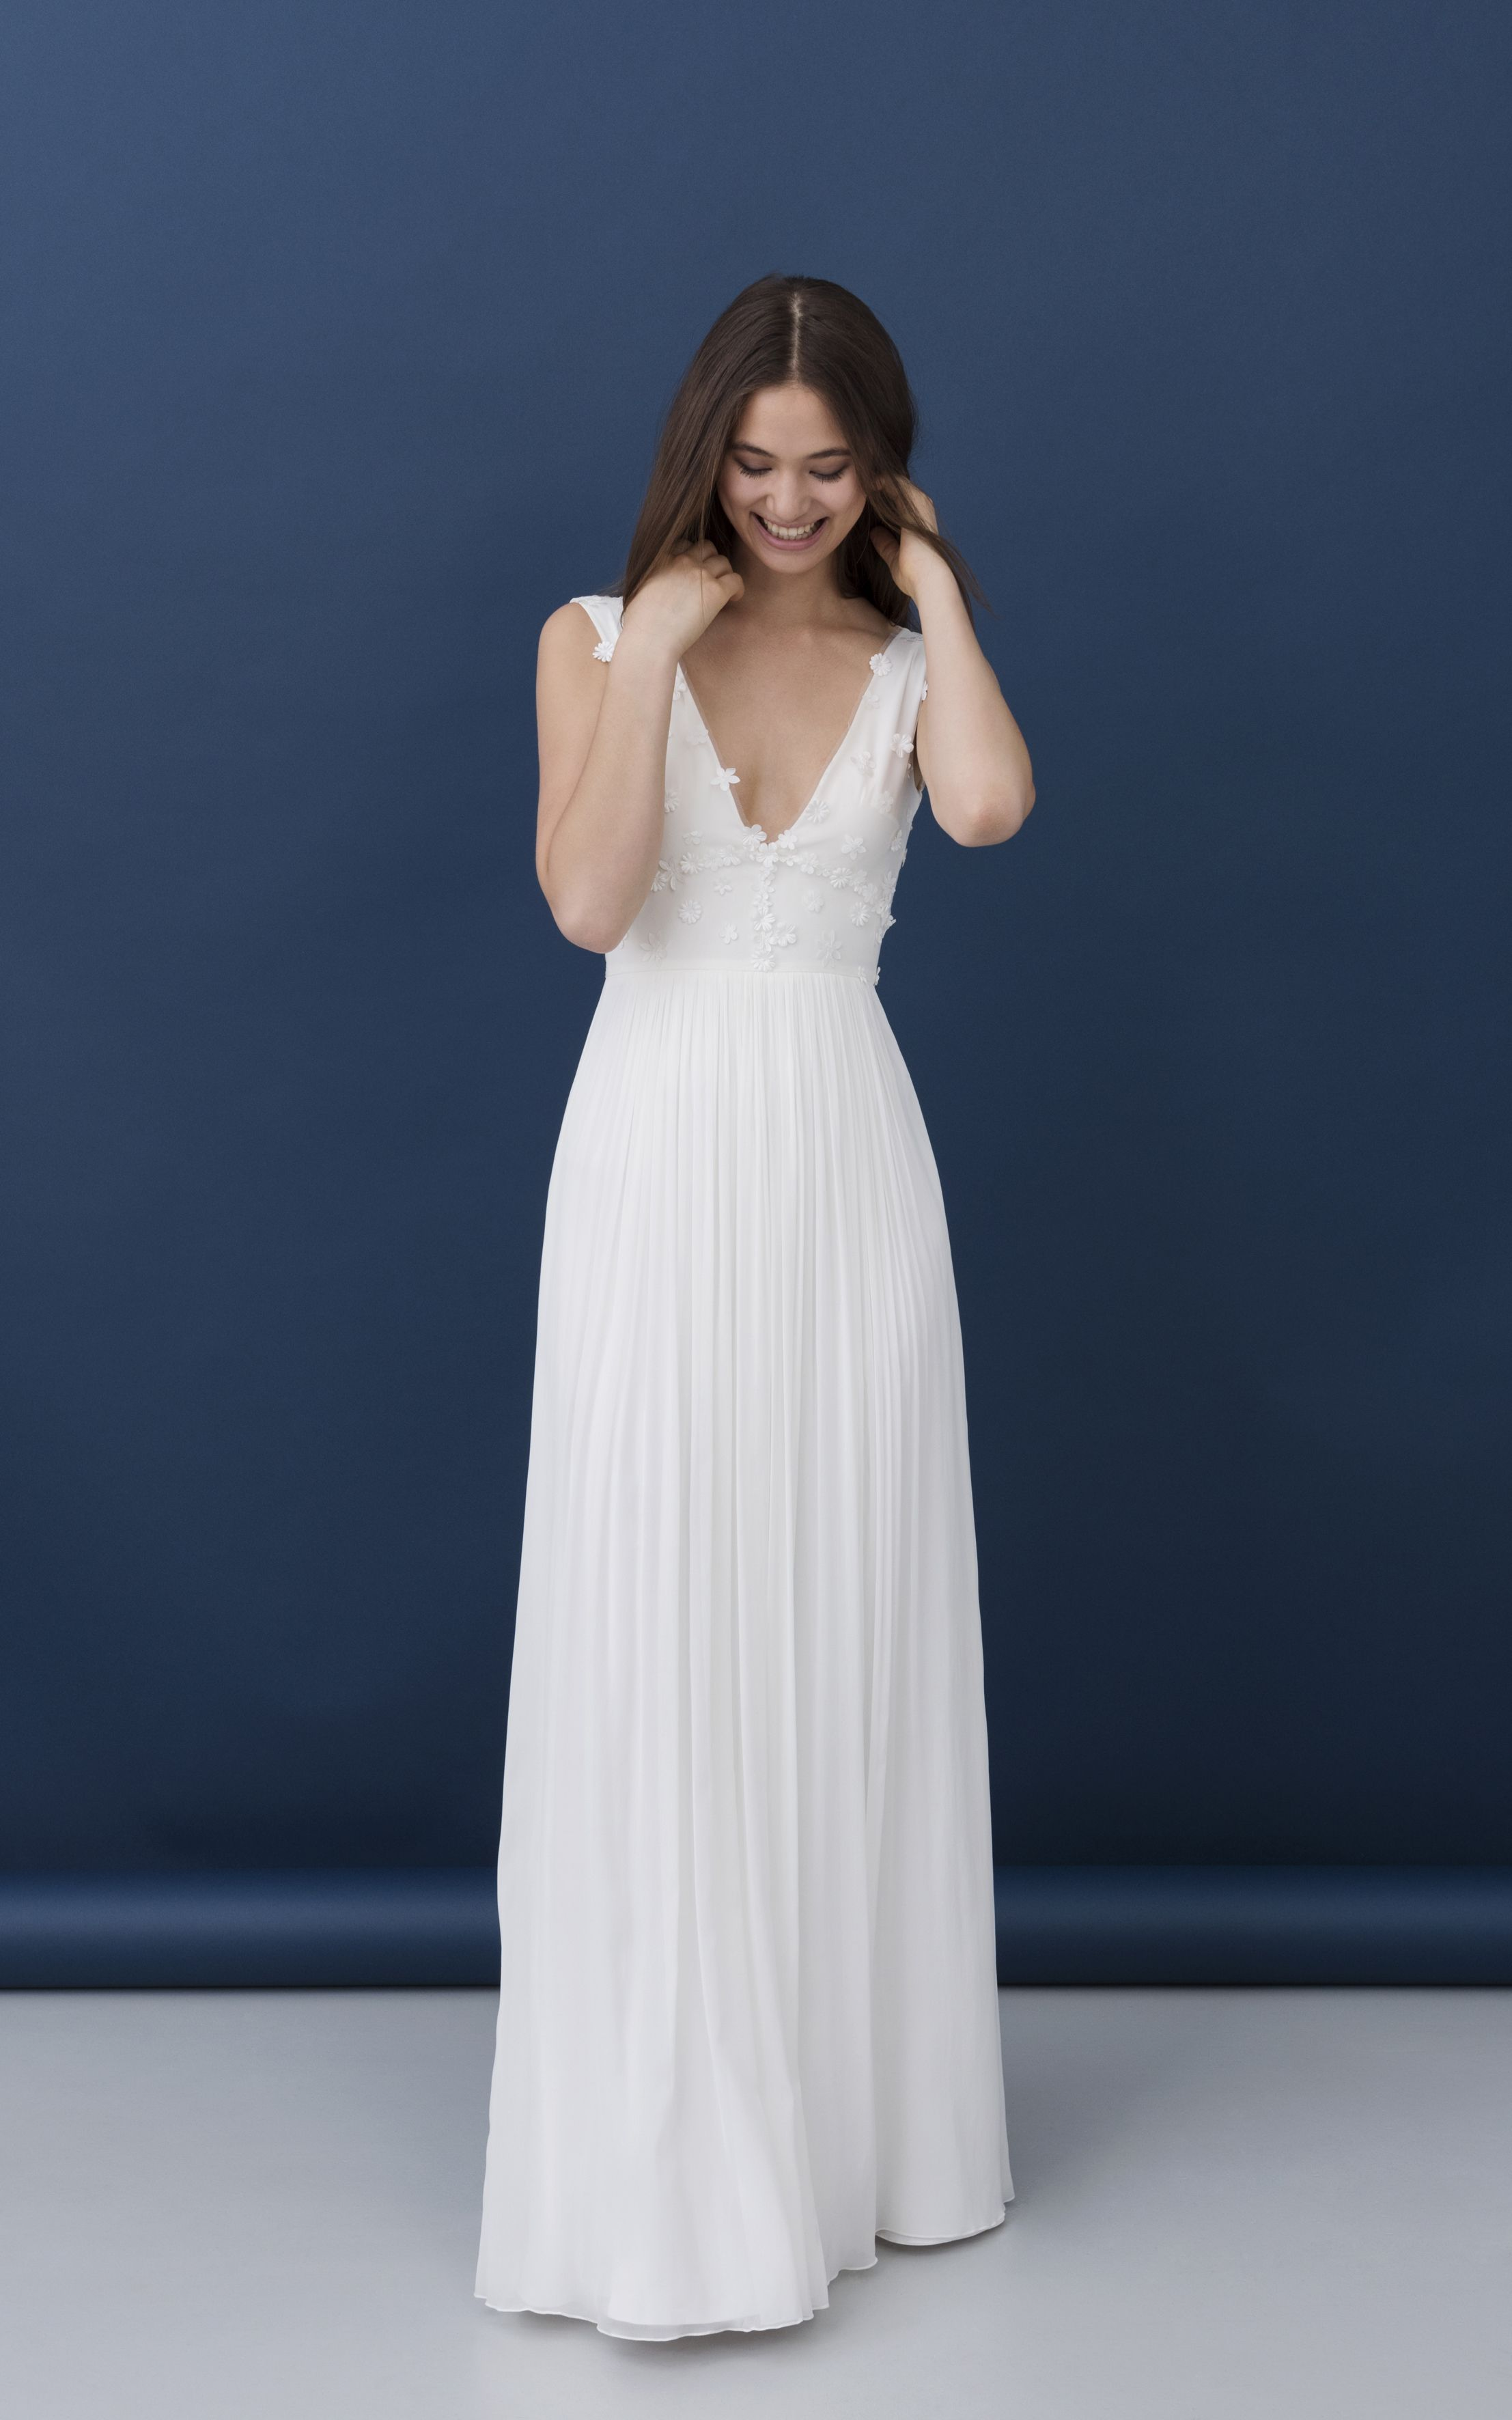 kisui Berlin Collection Bridal Style: ella, Brautkleid, Weddingdress ...